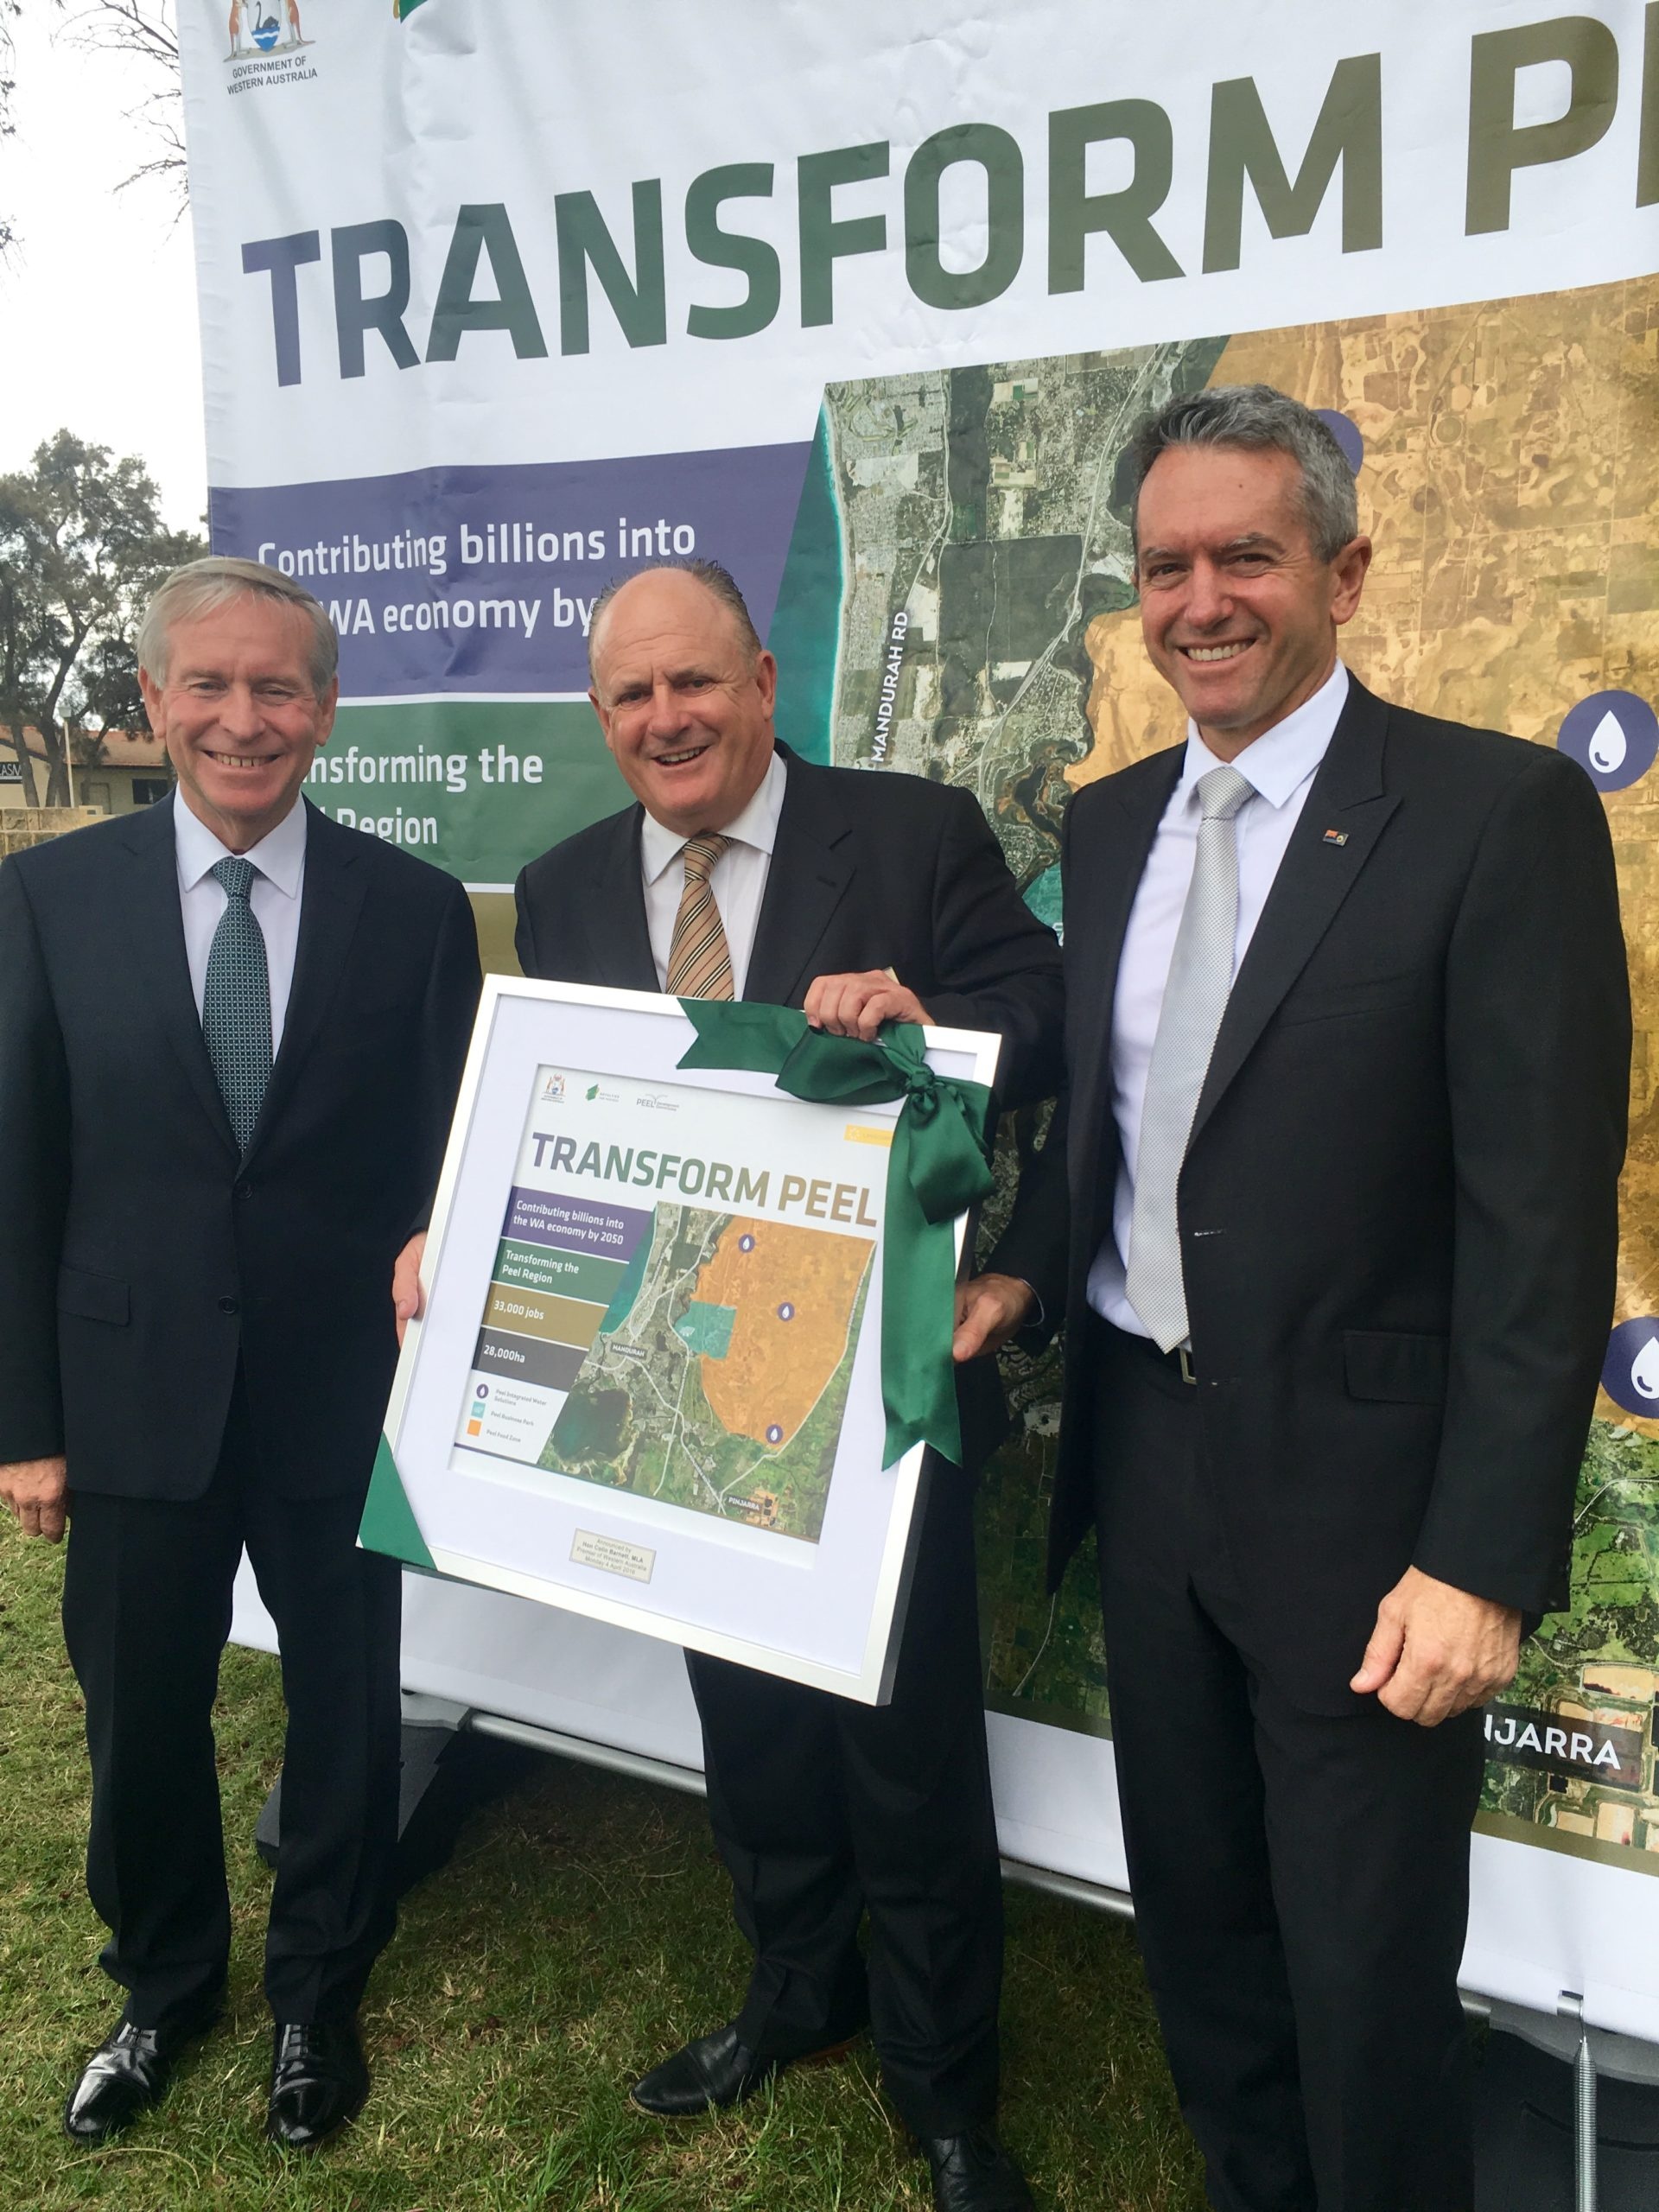 Premier Colin Barnett, PDC chair Paul Fitzpatrick and Minister Terry Redman vertical